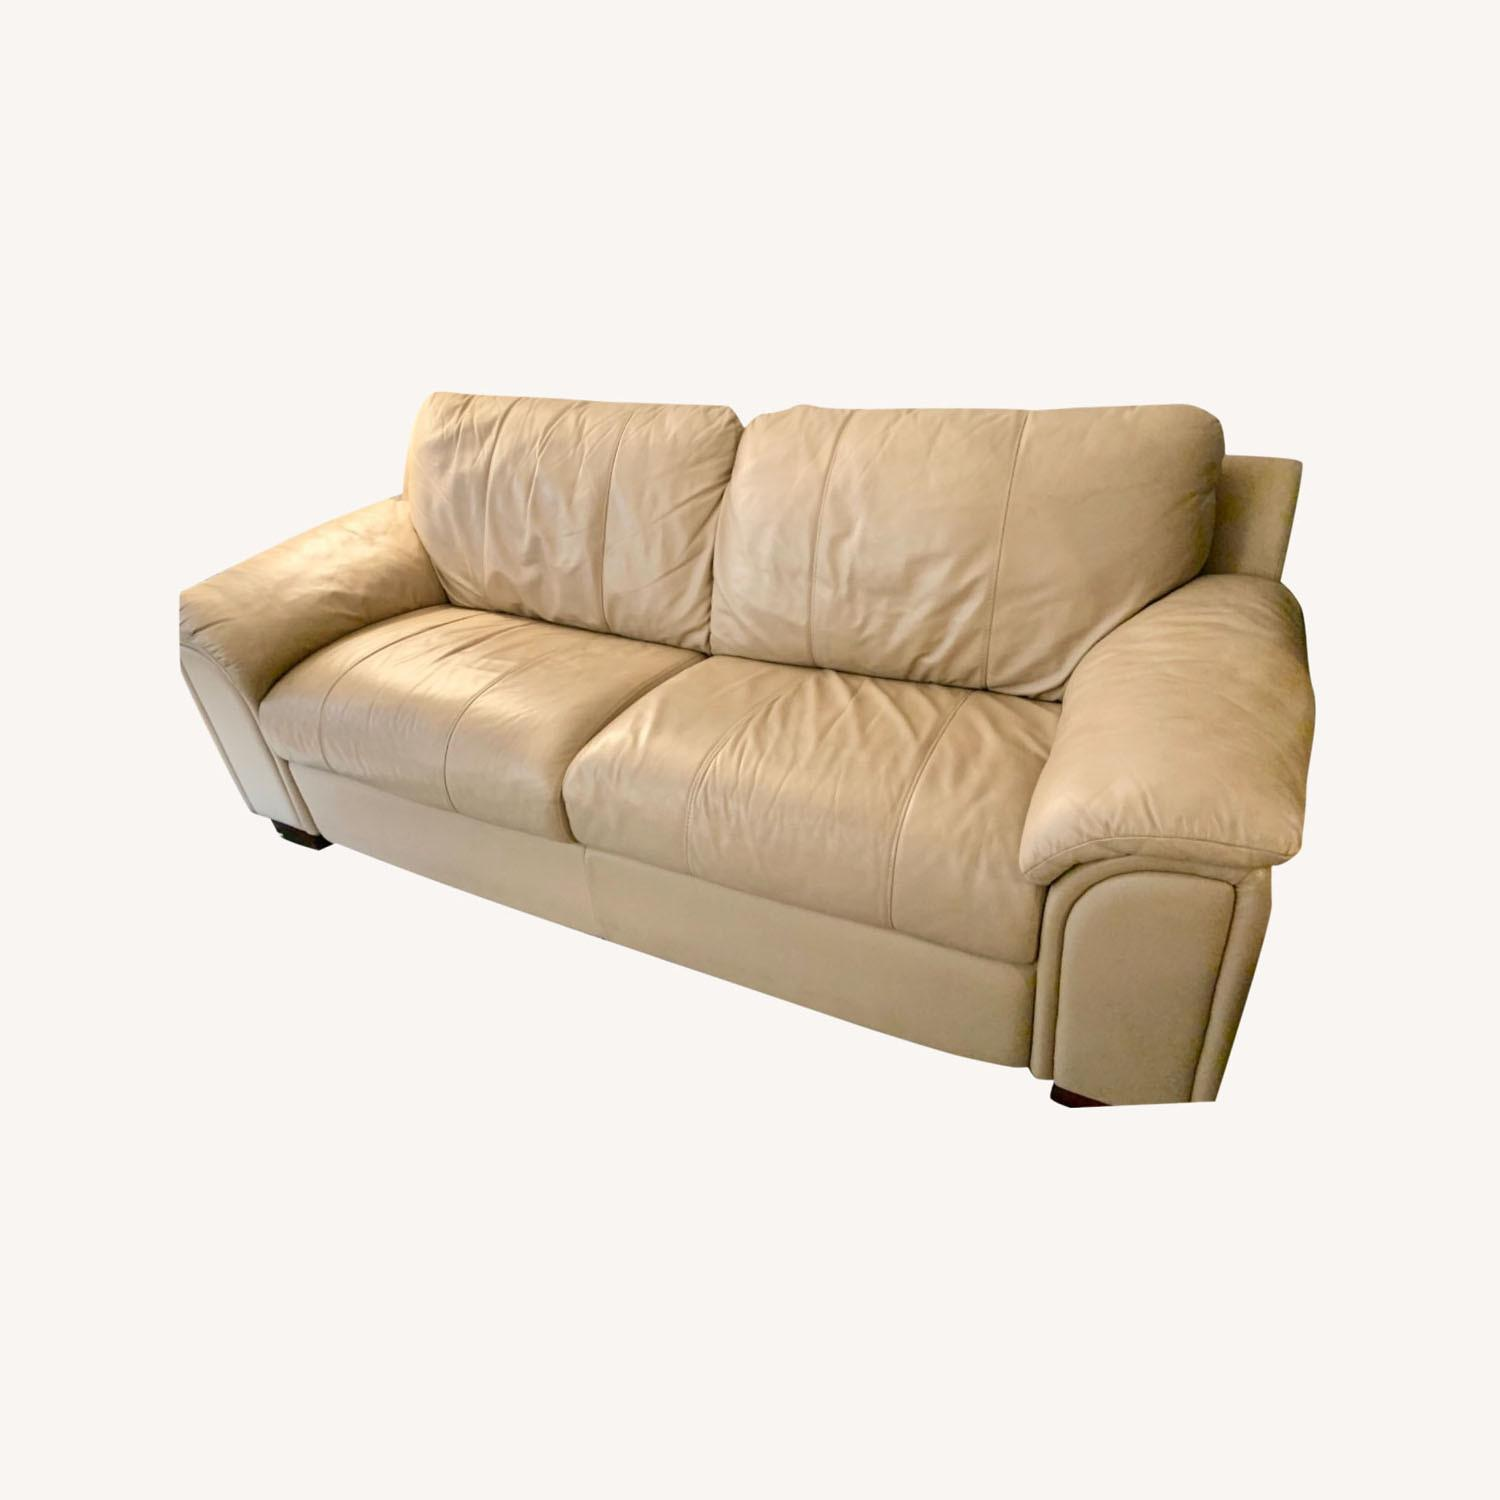 American Leather Pull Out Sleeper Sofa - image-0